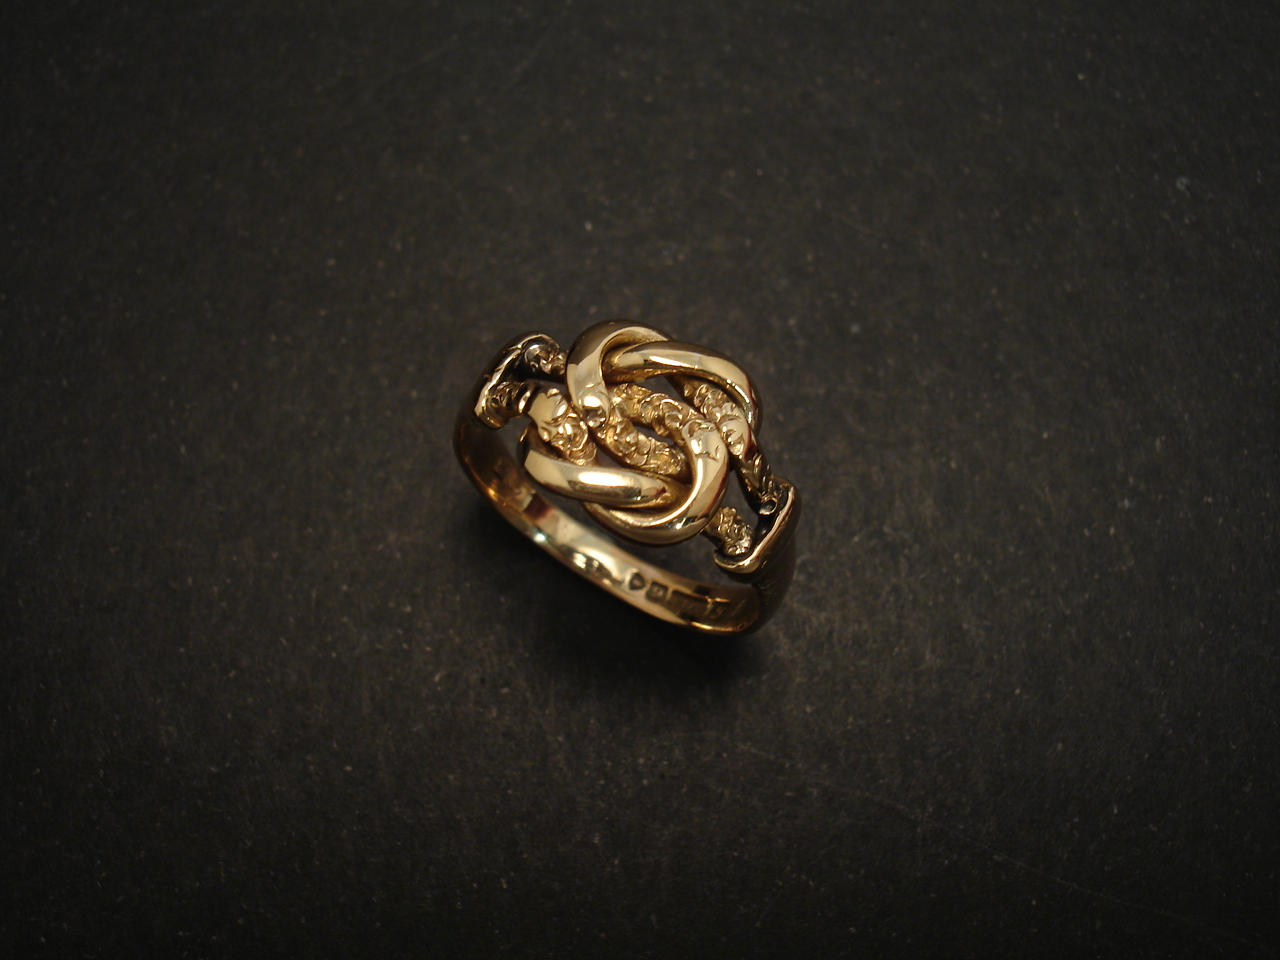 Chester 1919 Hallmarks 9ct Gold Antique Knot Ring